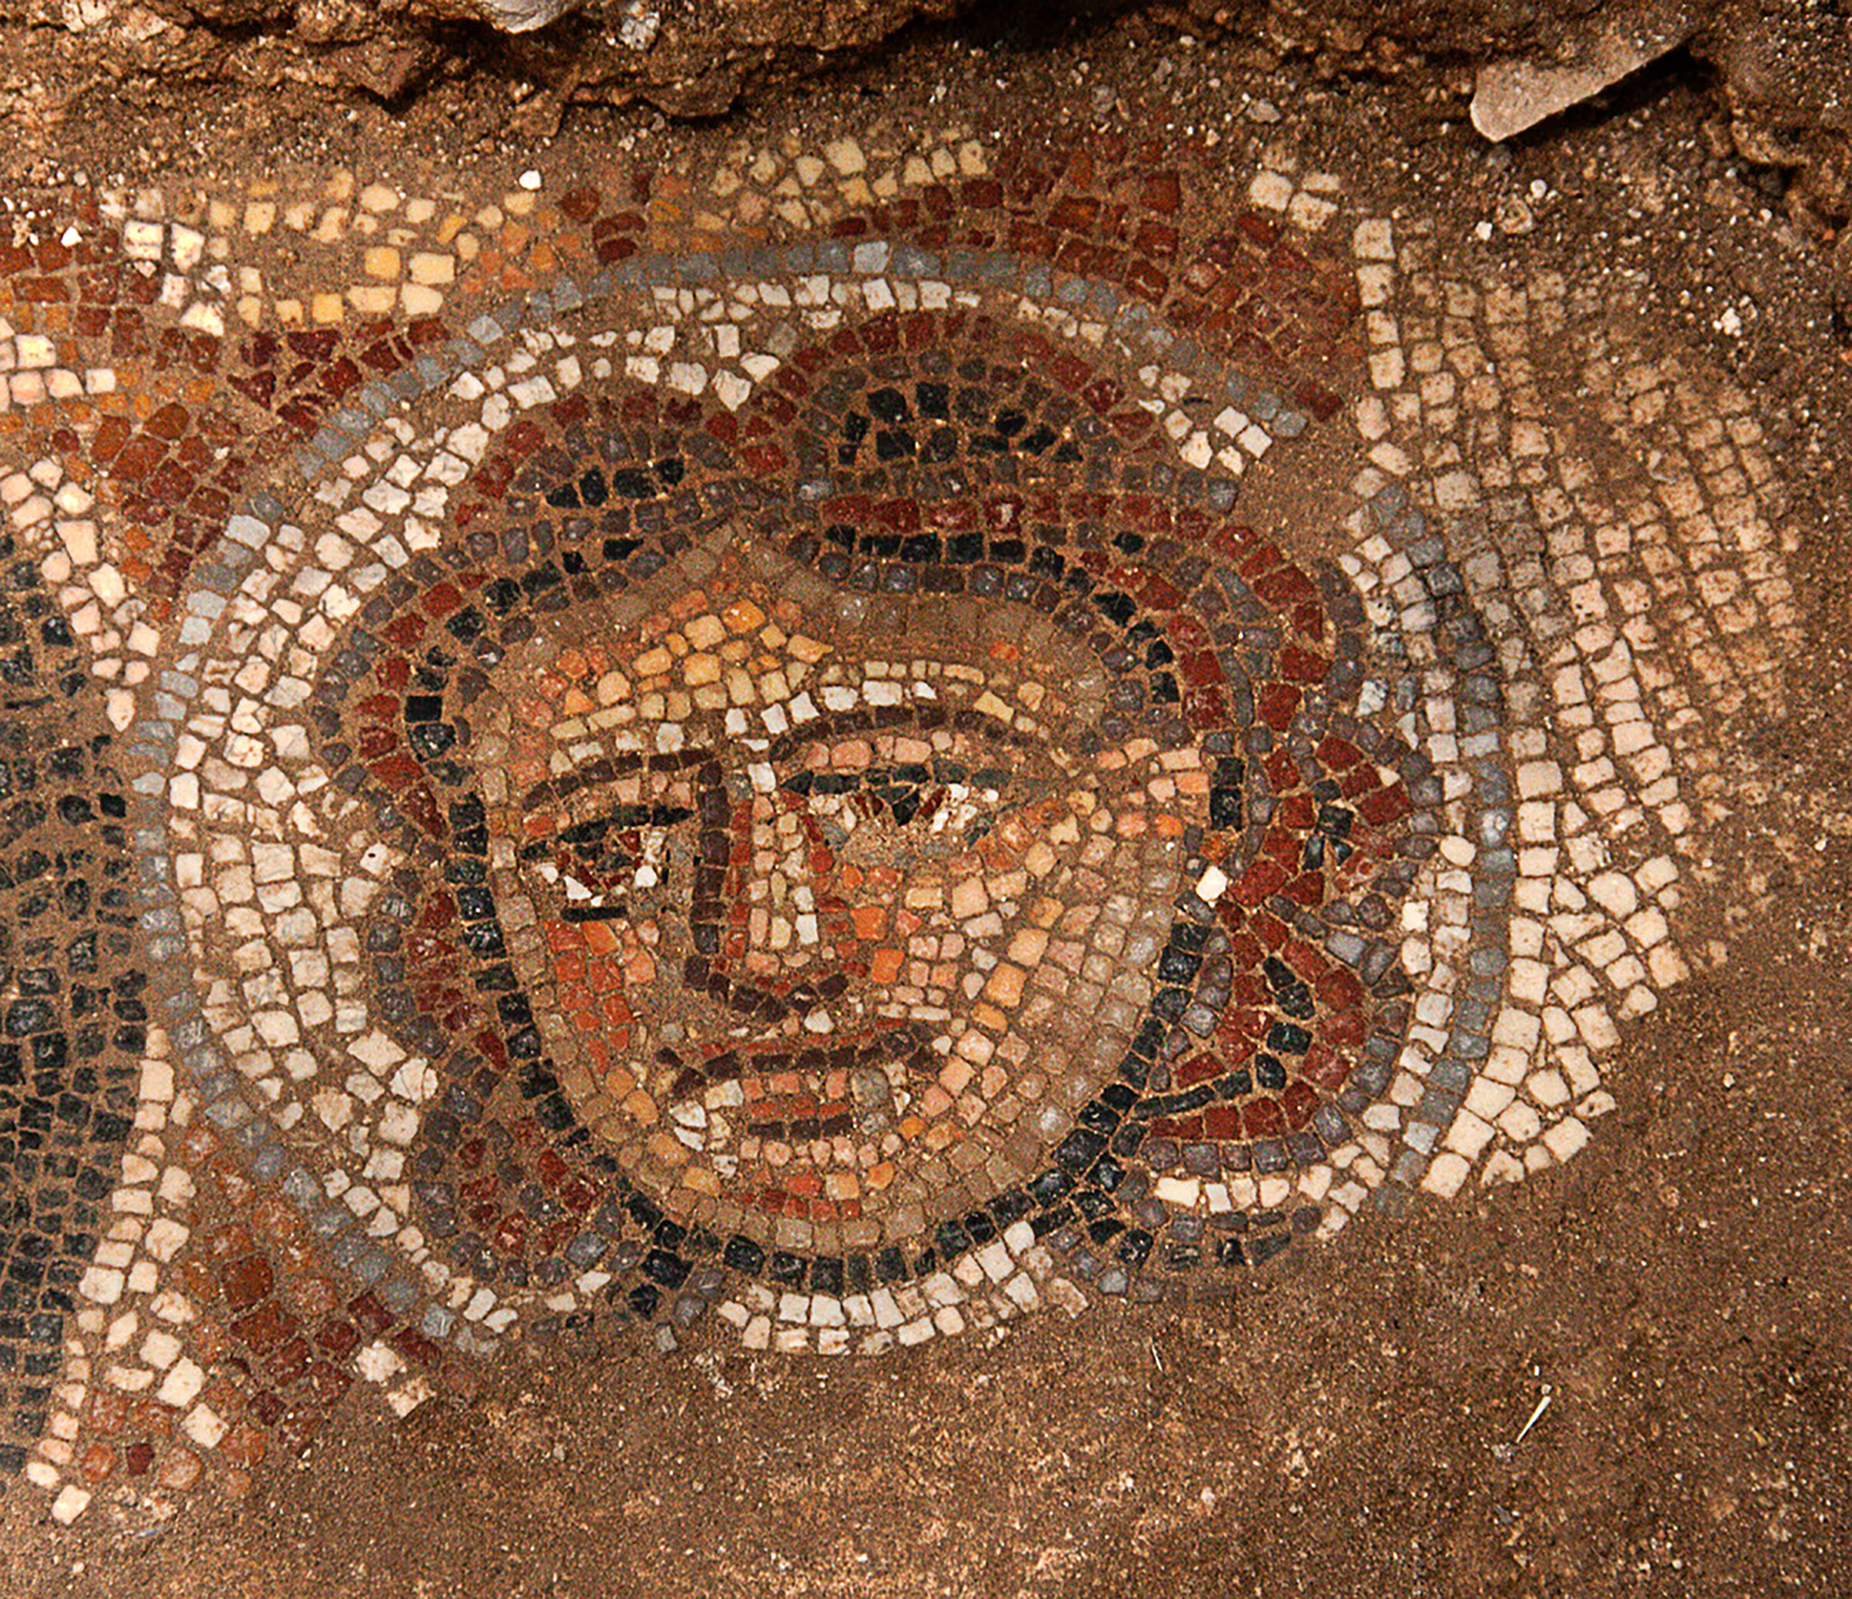 BYU graduate Bryan R. Bozung was the first to discover mosaics depicting biblical scenes in the Galilean village of Huqoq. These mosaics reveal depictions of Samson, Jonah, Noah's ark and Pharaoh's army swallowed up in the Red Sea. There are also glimpses of daily life in antiquity and a mysterious non-biblical story.